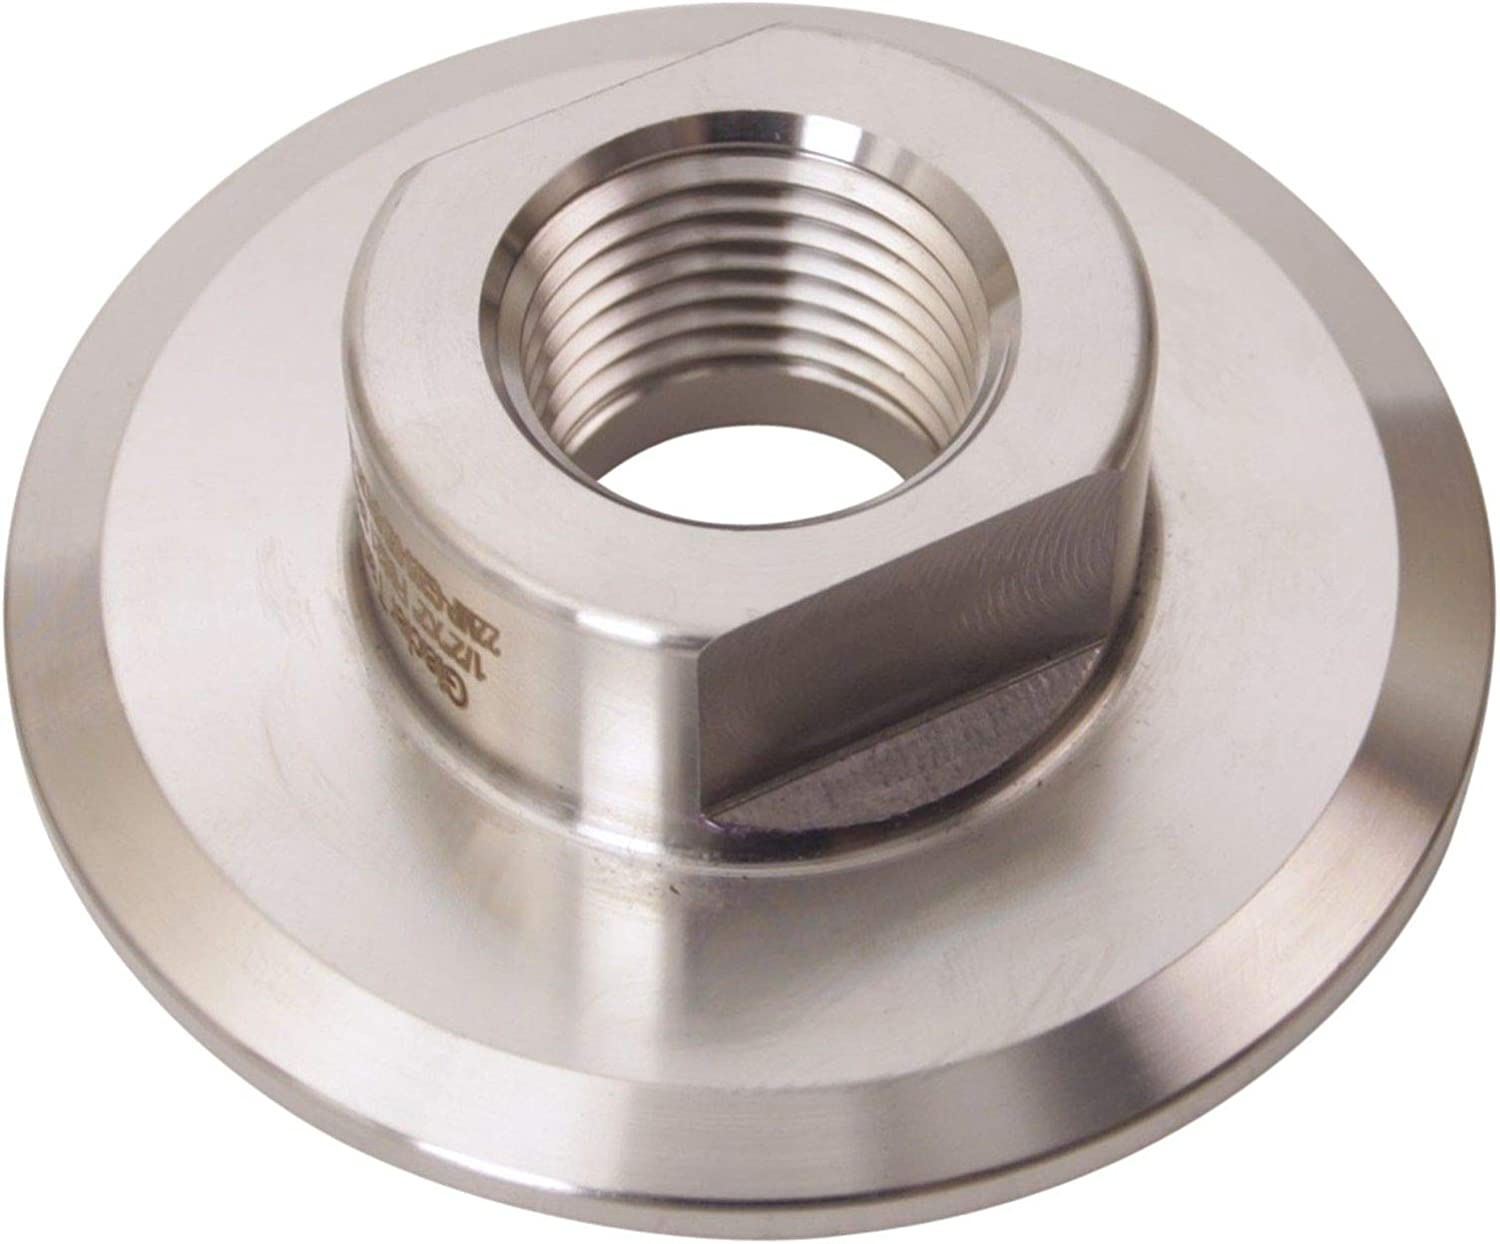 - Stainless Steel SS304 Tri Clamp 2 inch x FNPT 1//2 in NPT Adapter Short Glacier Tanks